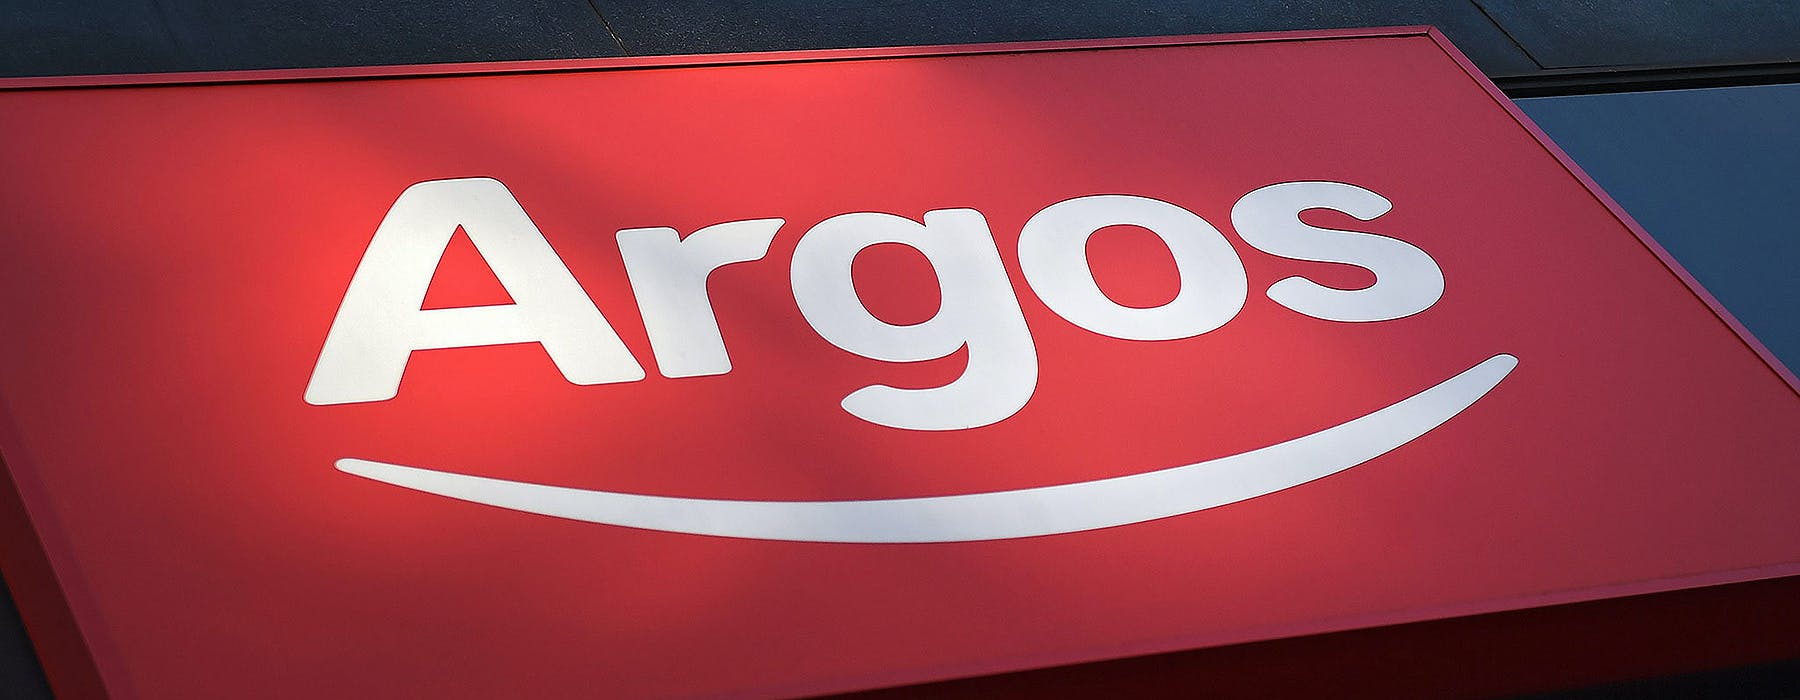 Could Argos have dominated fashion in the UK?